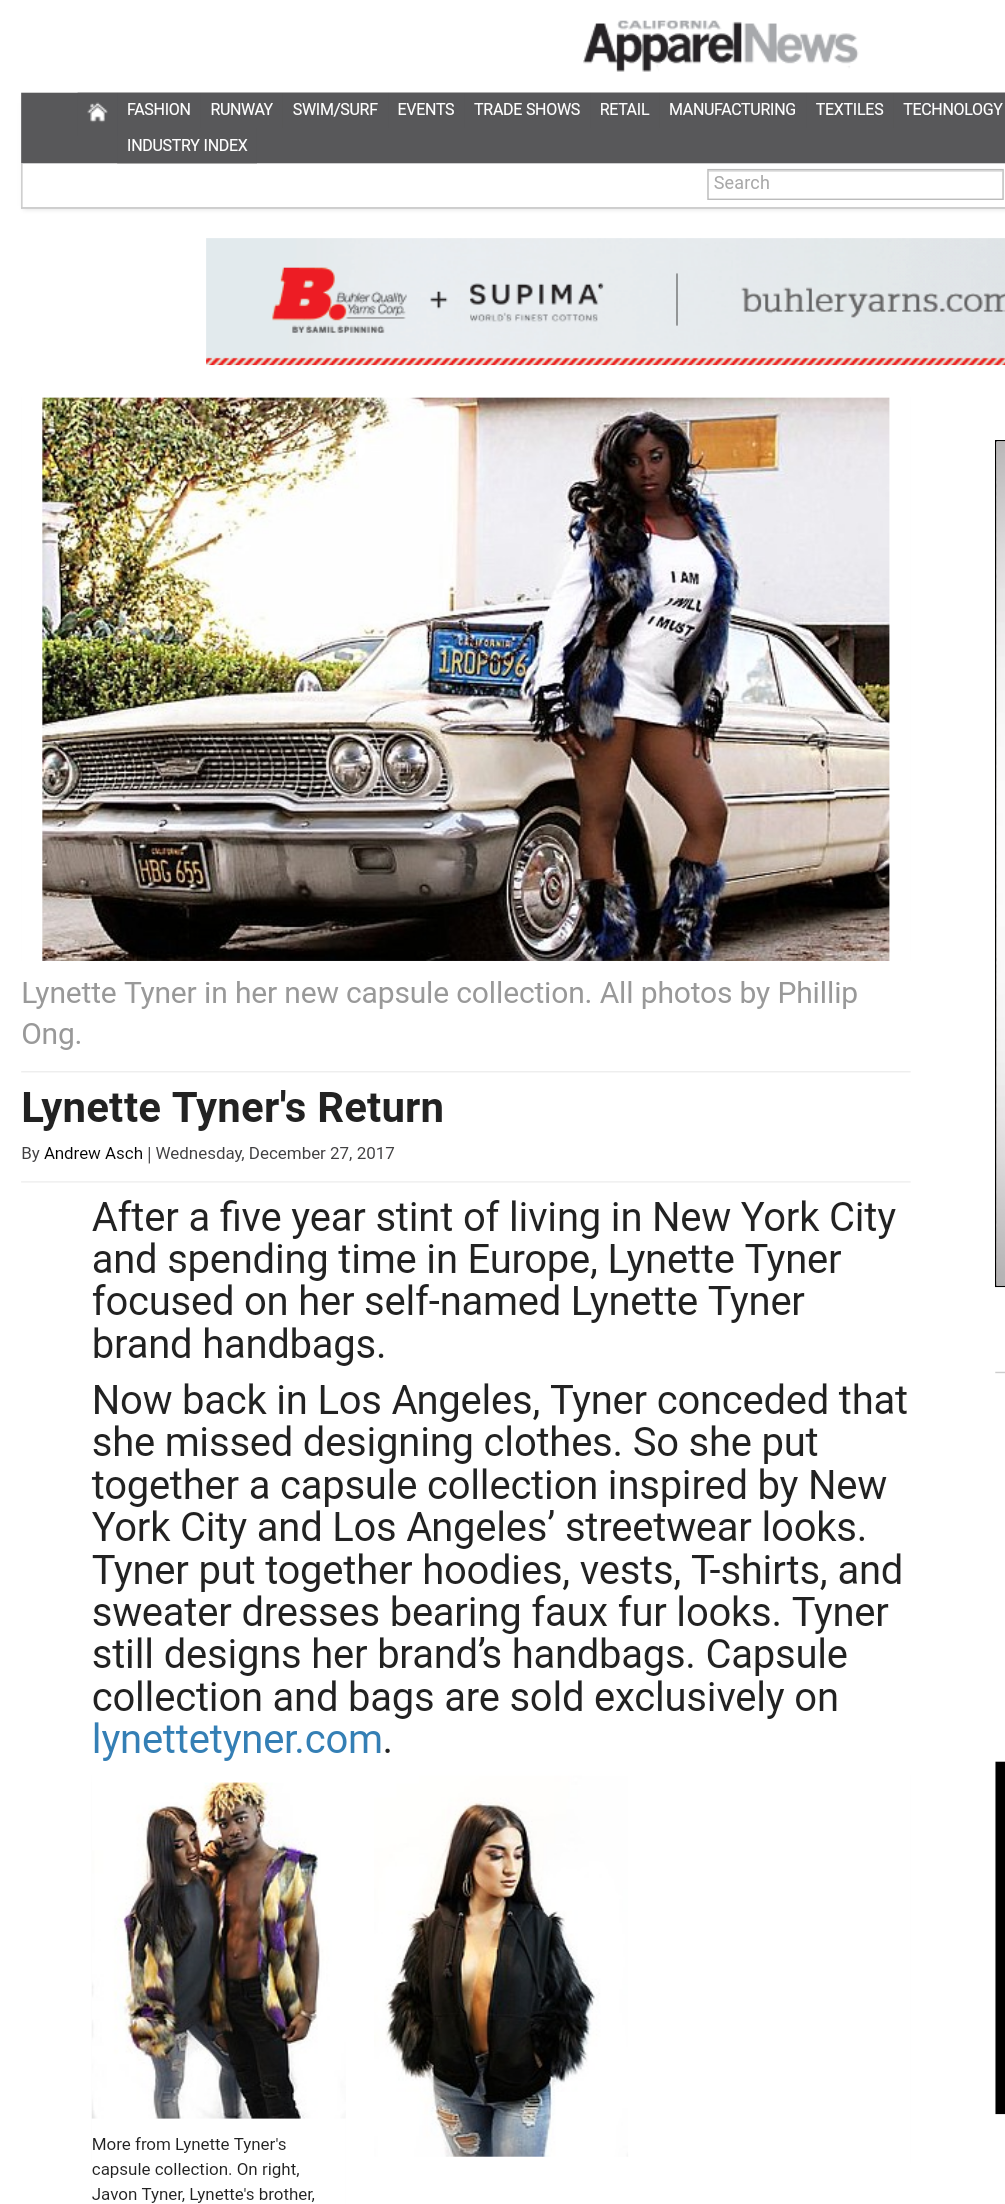 Apparel new article for Lynette Tyner new product launch